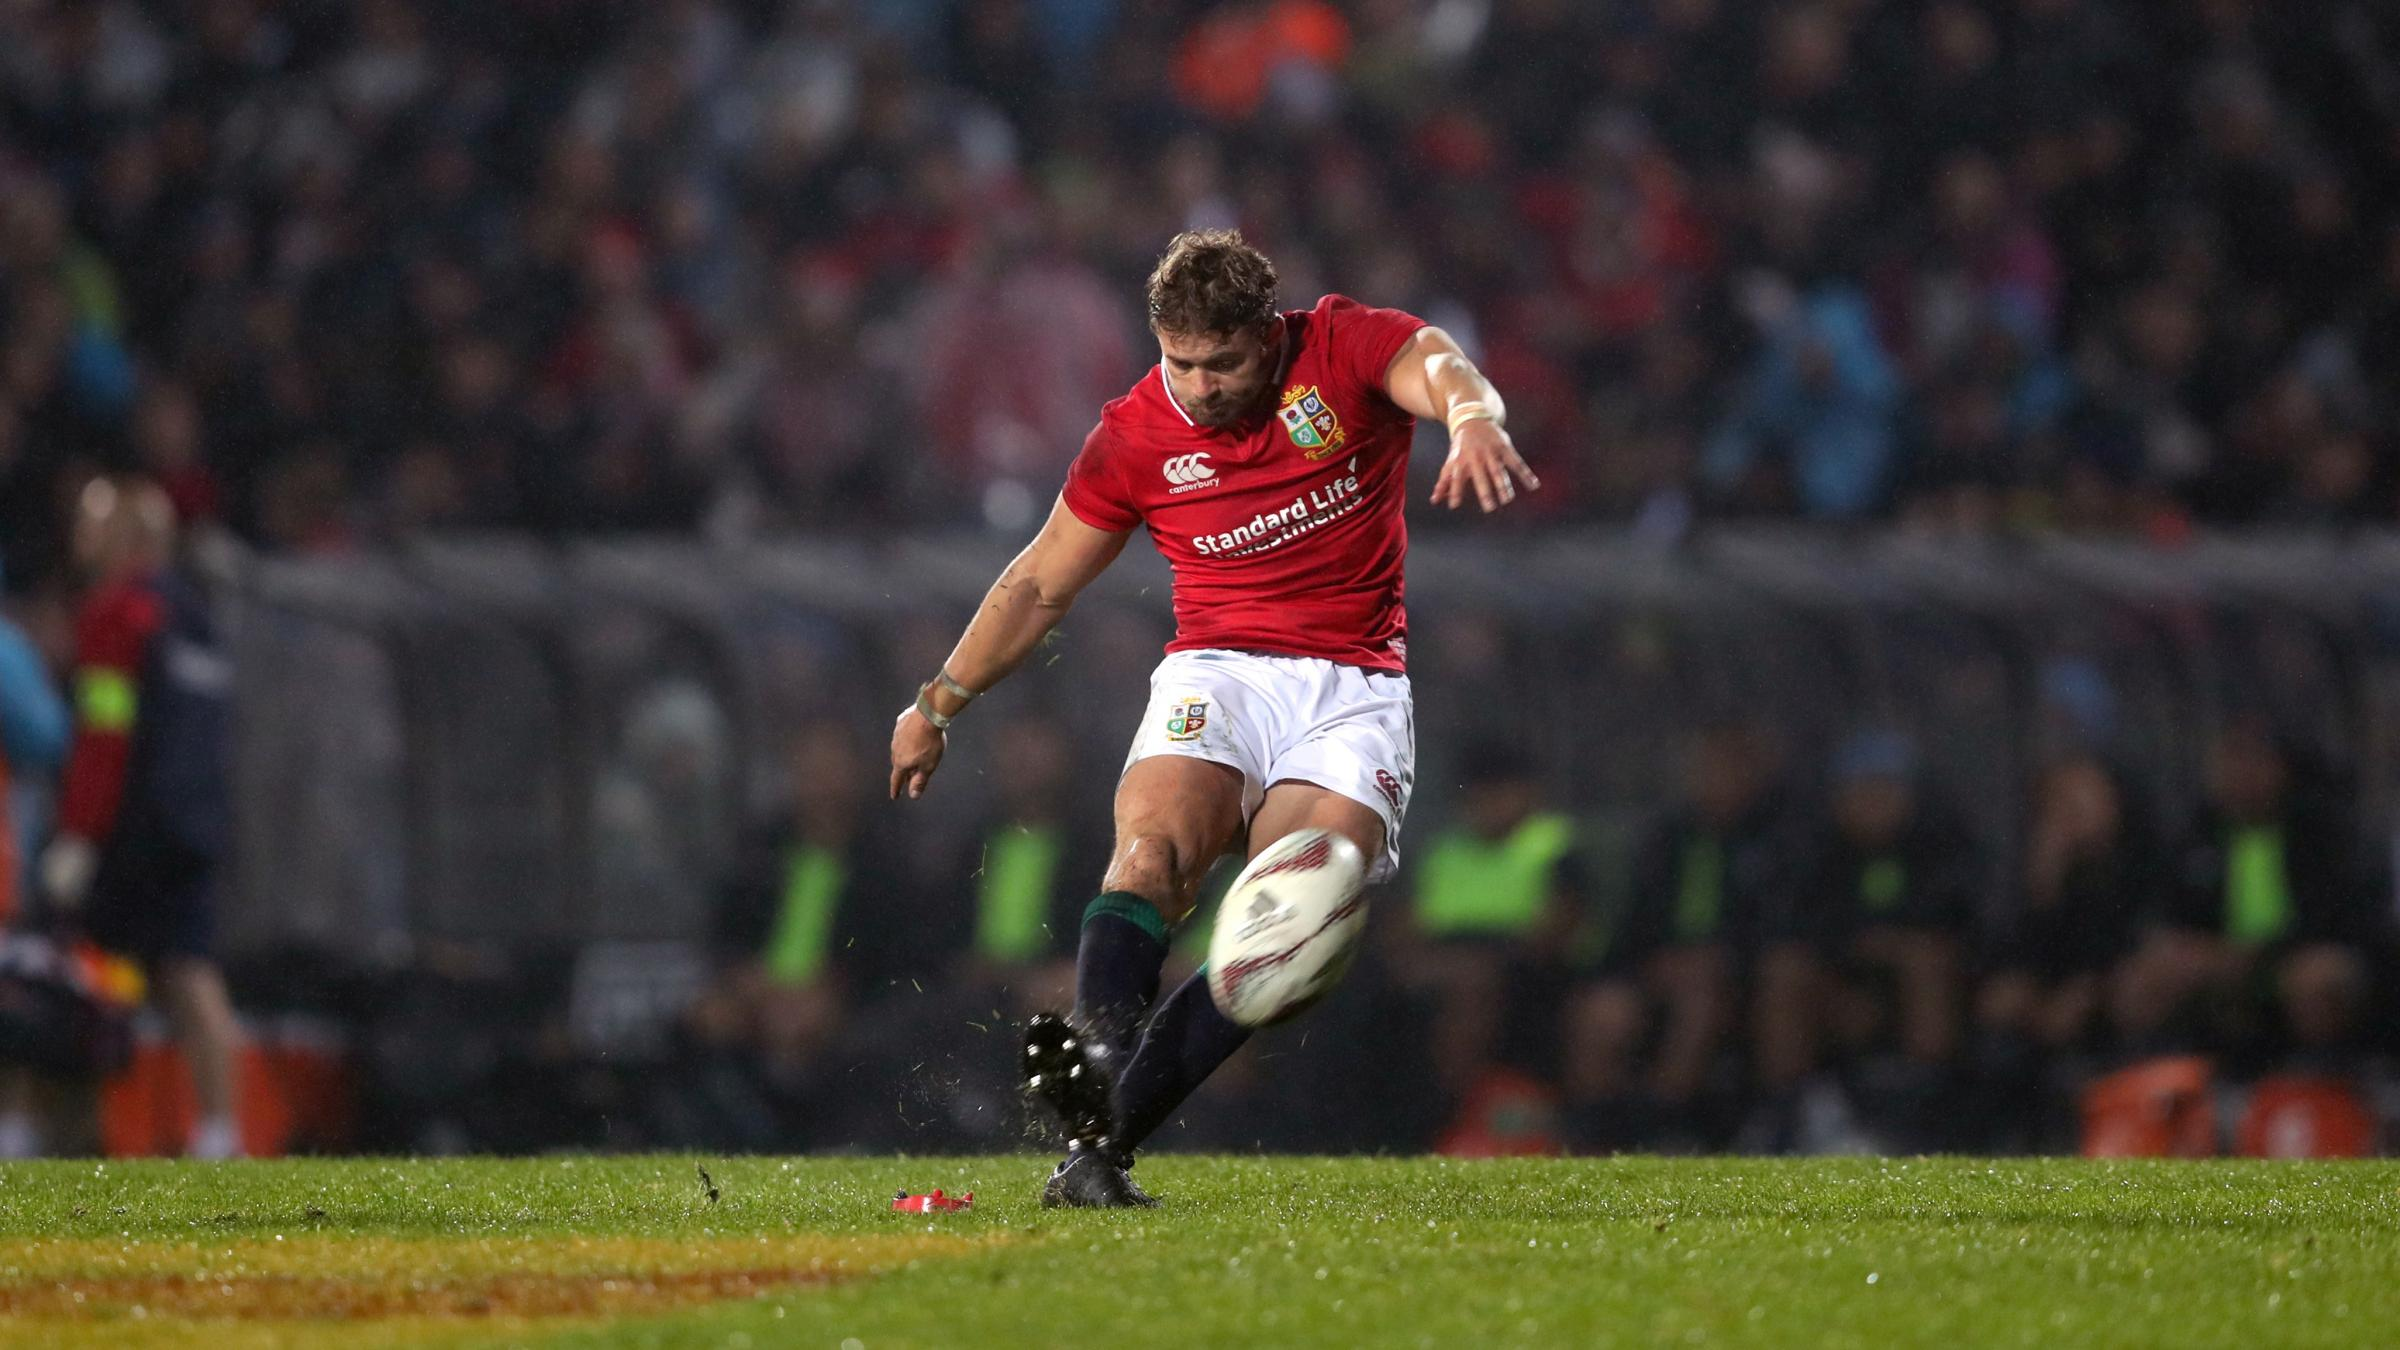 Rory Best to captain Lions against the Chiefs